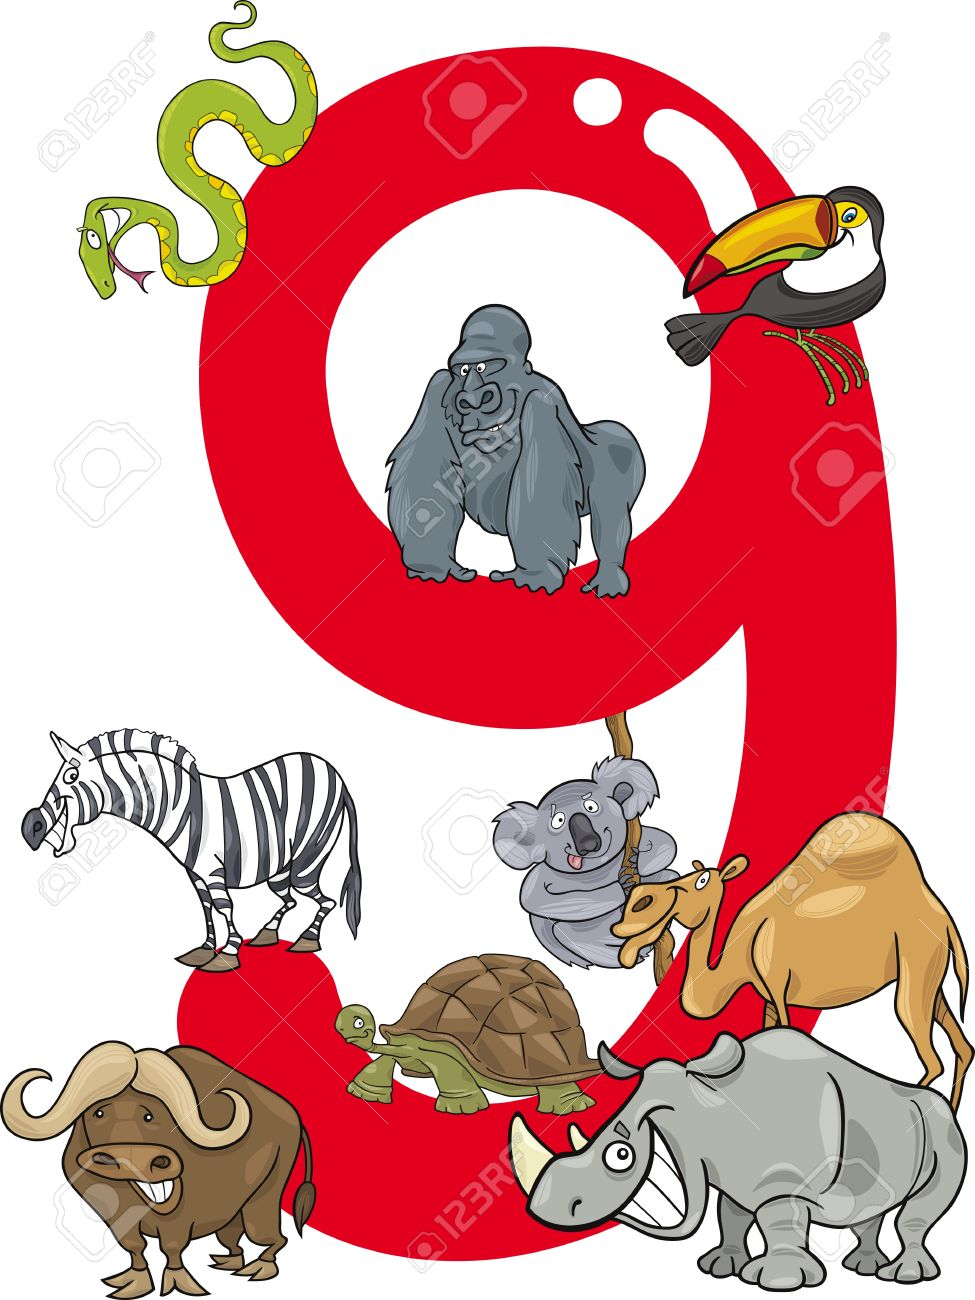 cartoon illustration with number nine and different animals Stock Vector - 13276711